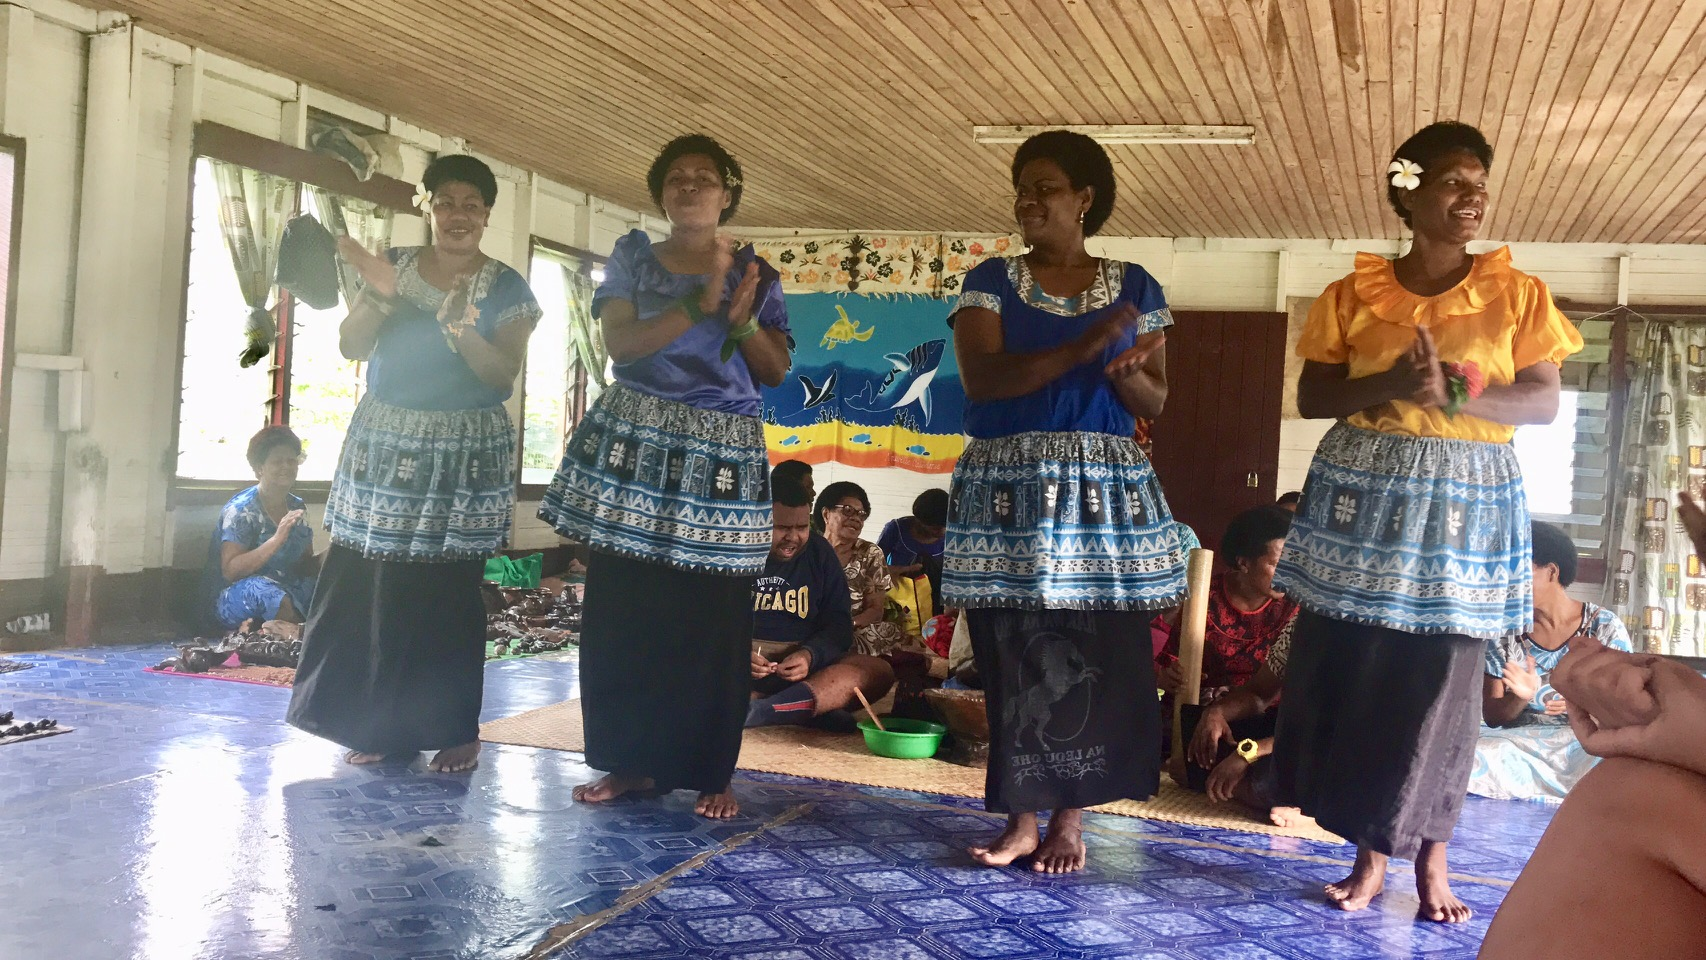 Beautiful women of the village presenting us with song and dance.